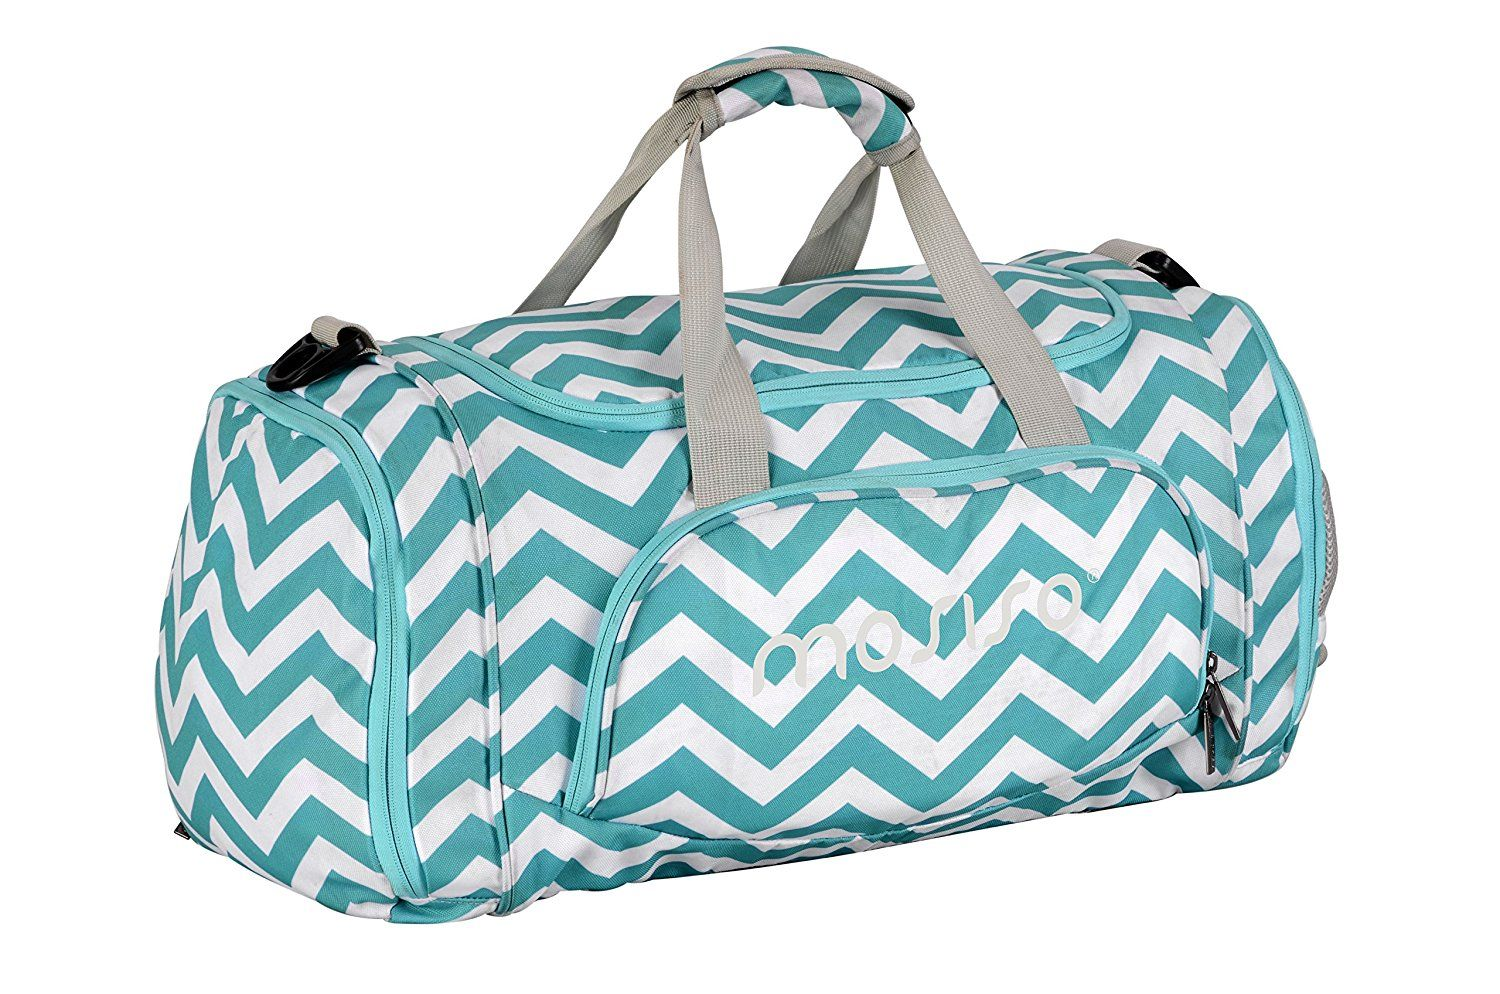 7433b92d8f Amazon.com: Mosiso Canvas Fabric Foldable Travel Luggage Duffels Shoulder  Bag Lightweight for Sports, Gym, Vacation, Chevron Hot Blue: Sports &  Outdoors